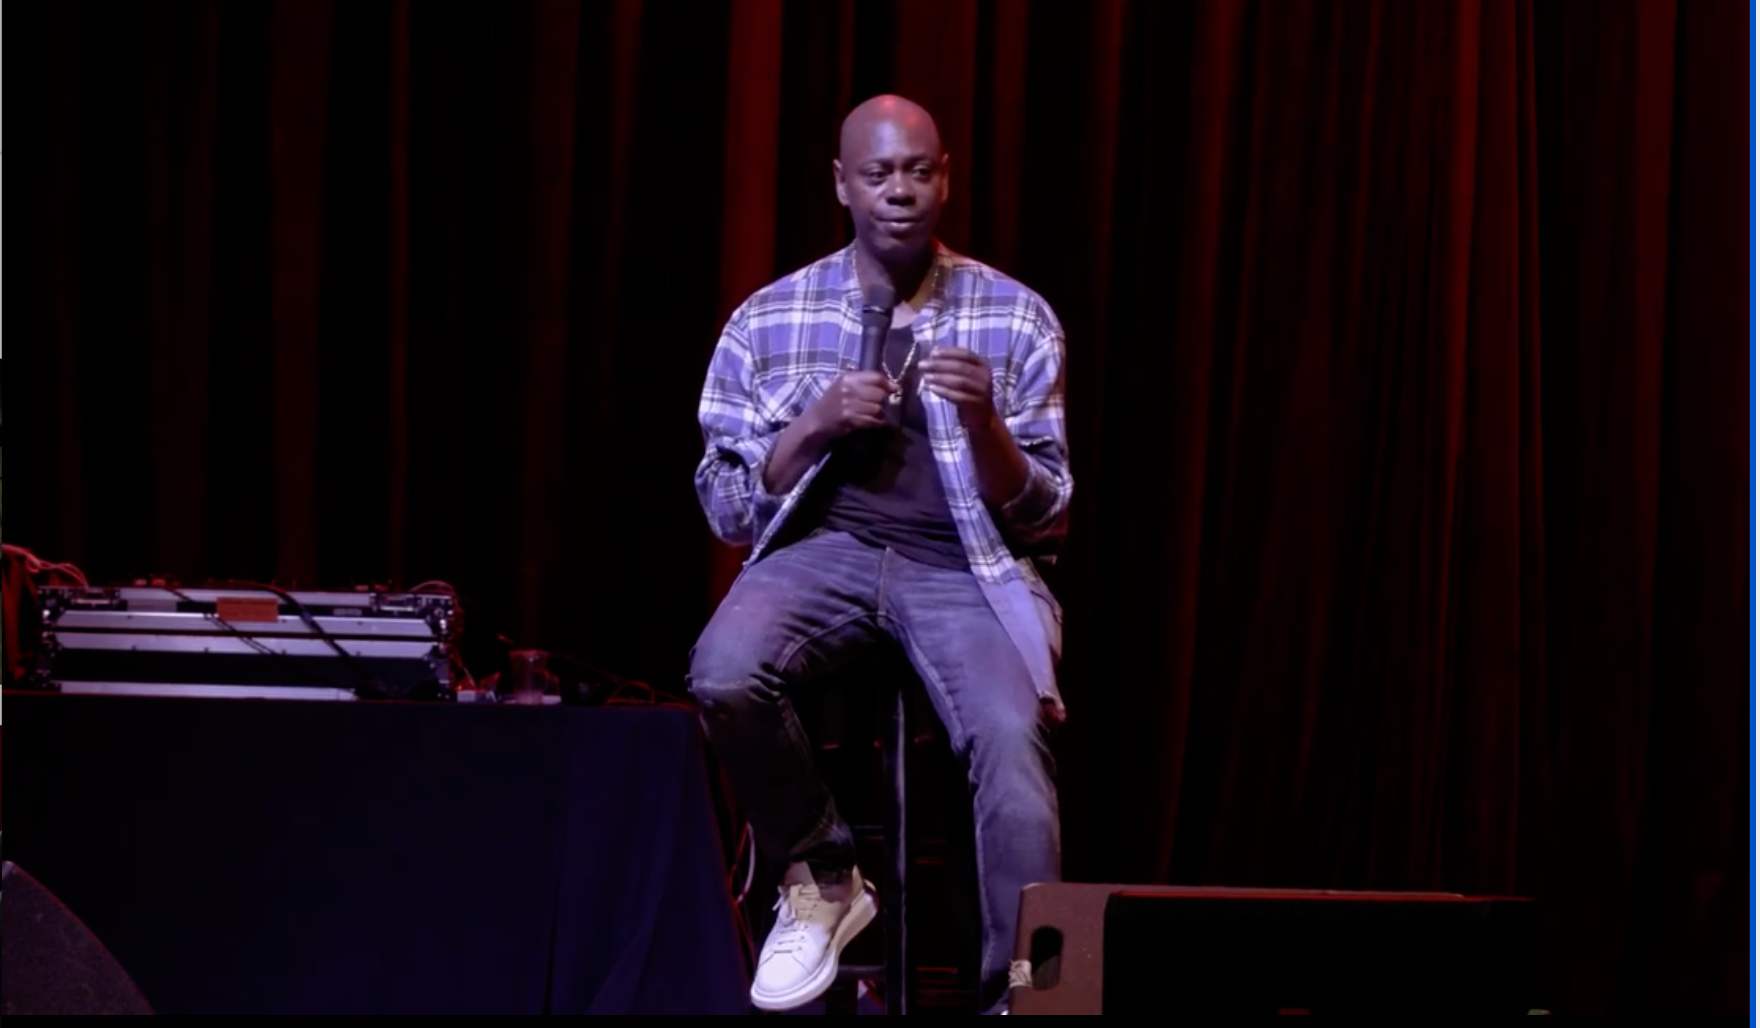 Netflix Removes Chappelle S Show Upon Request From Dave Chappelle Deadline